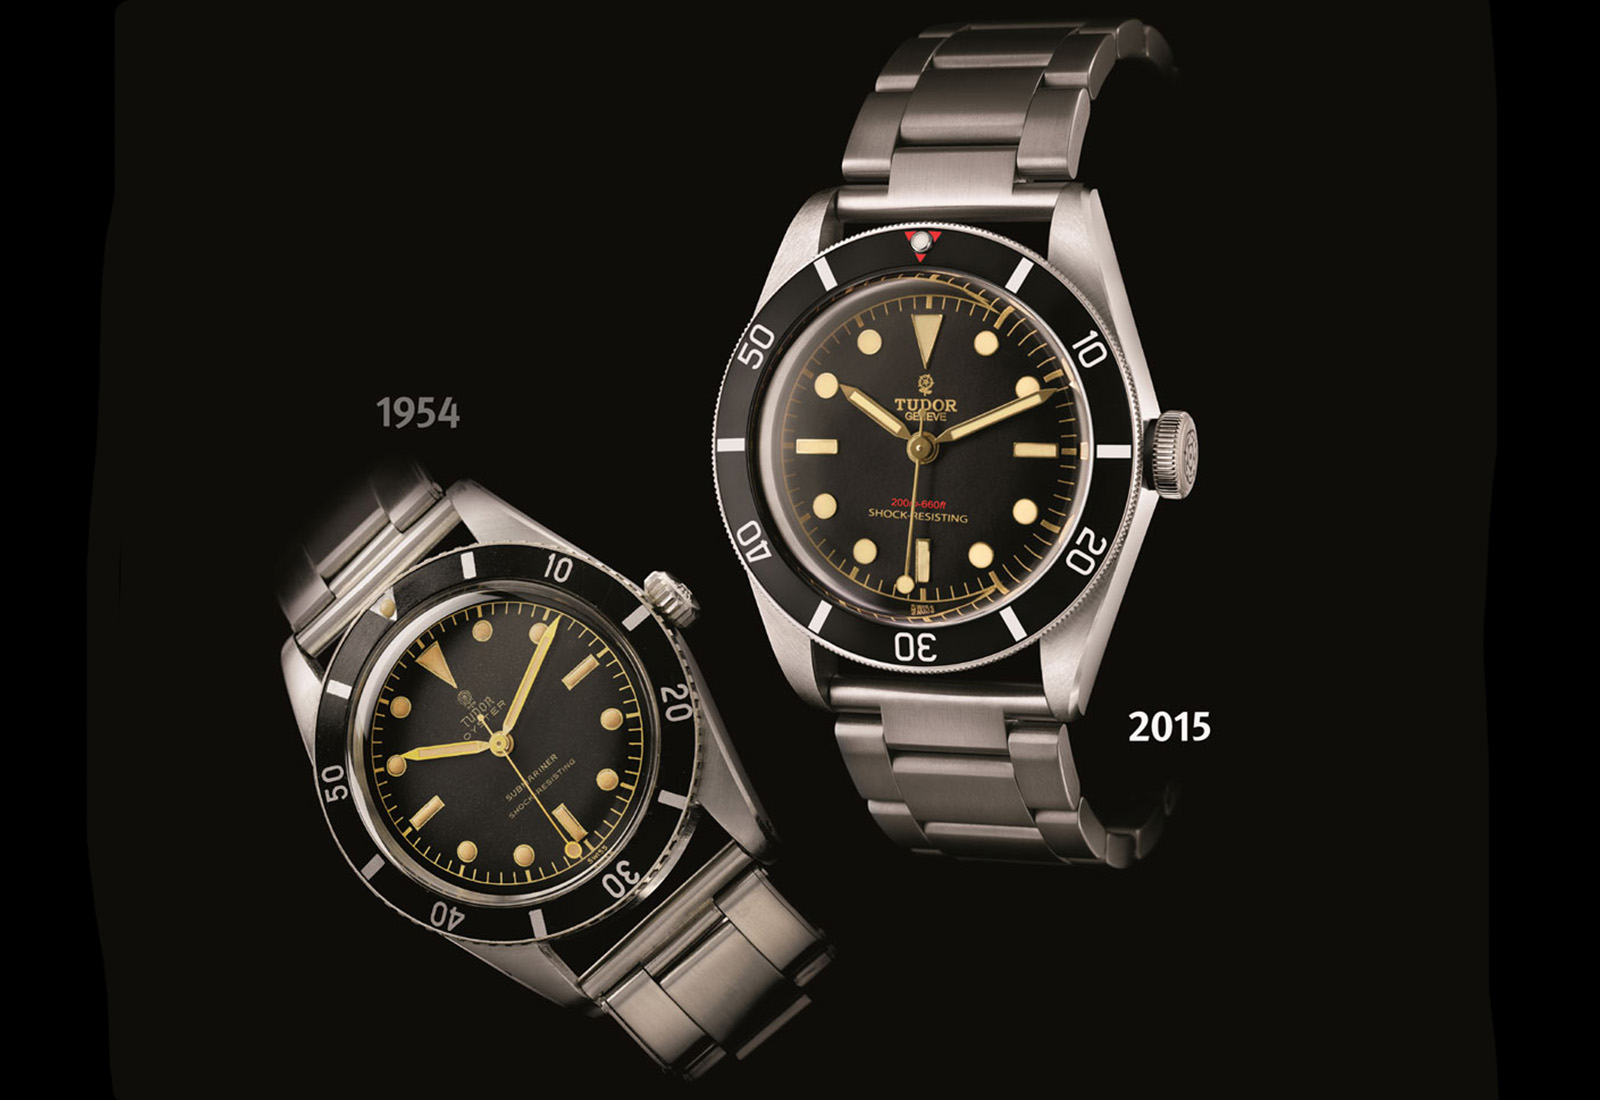 Tudor Submariner 7923 de 1955 vs. Tudor Heritage Black Bay Only Watch 2015